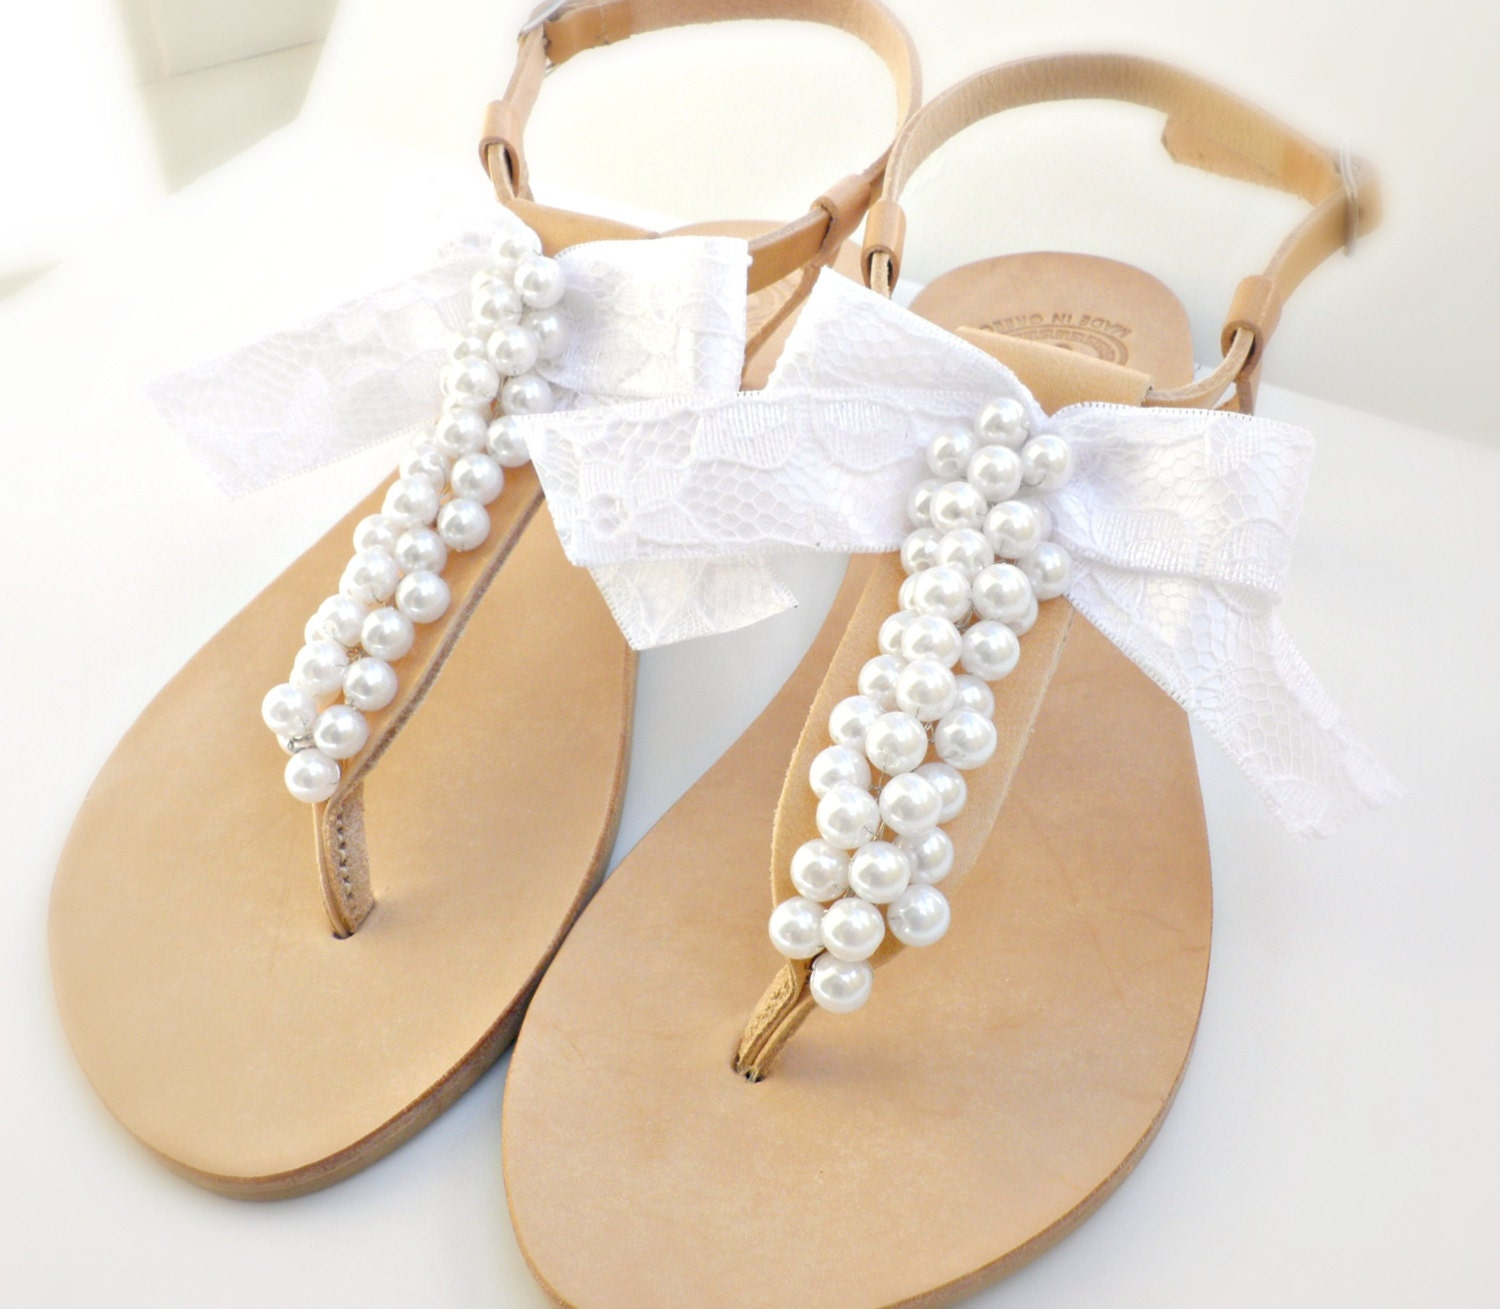 Sandals Wedding: Bridal Sandals Greek Leather Sandals-Wedding Sandals